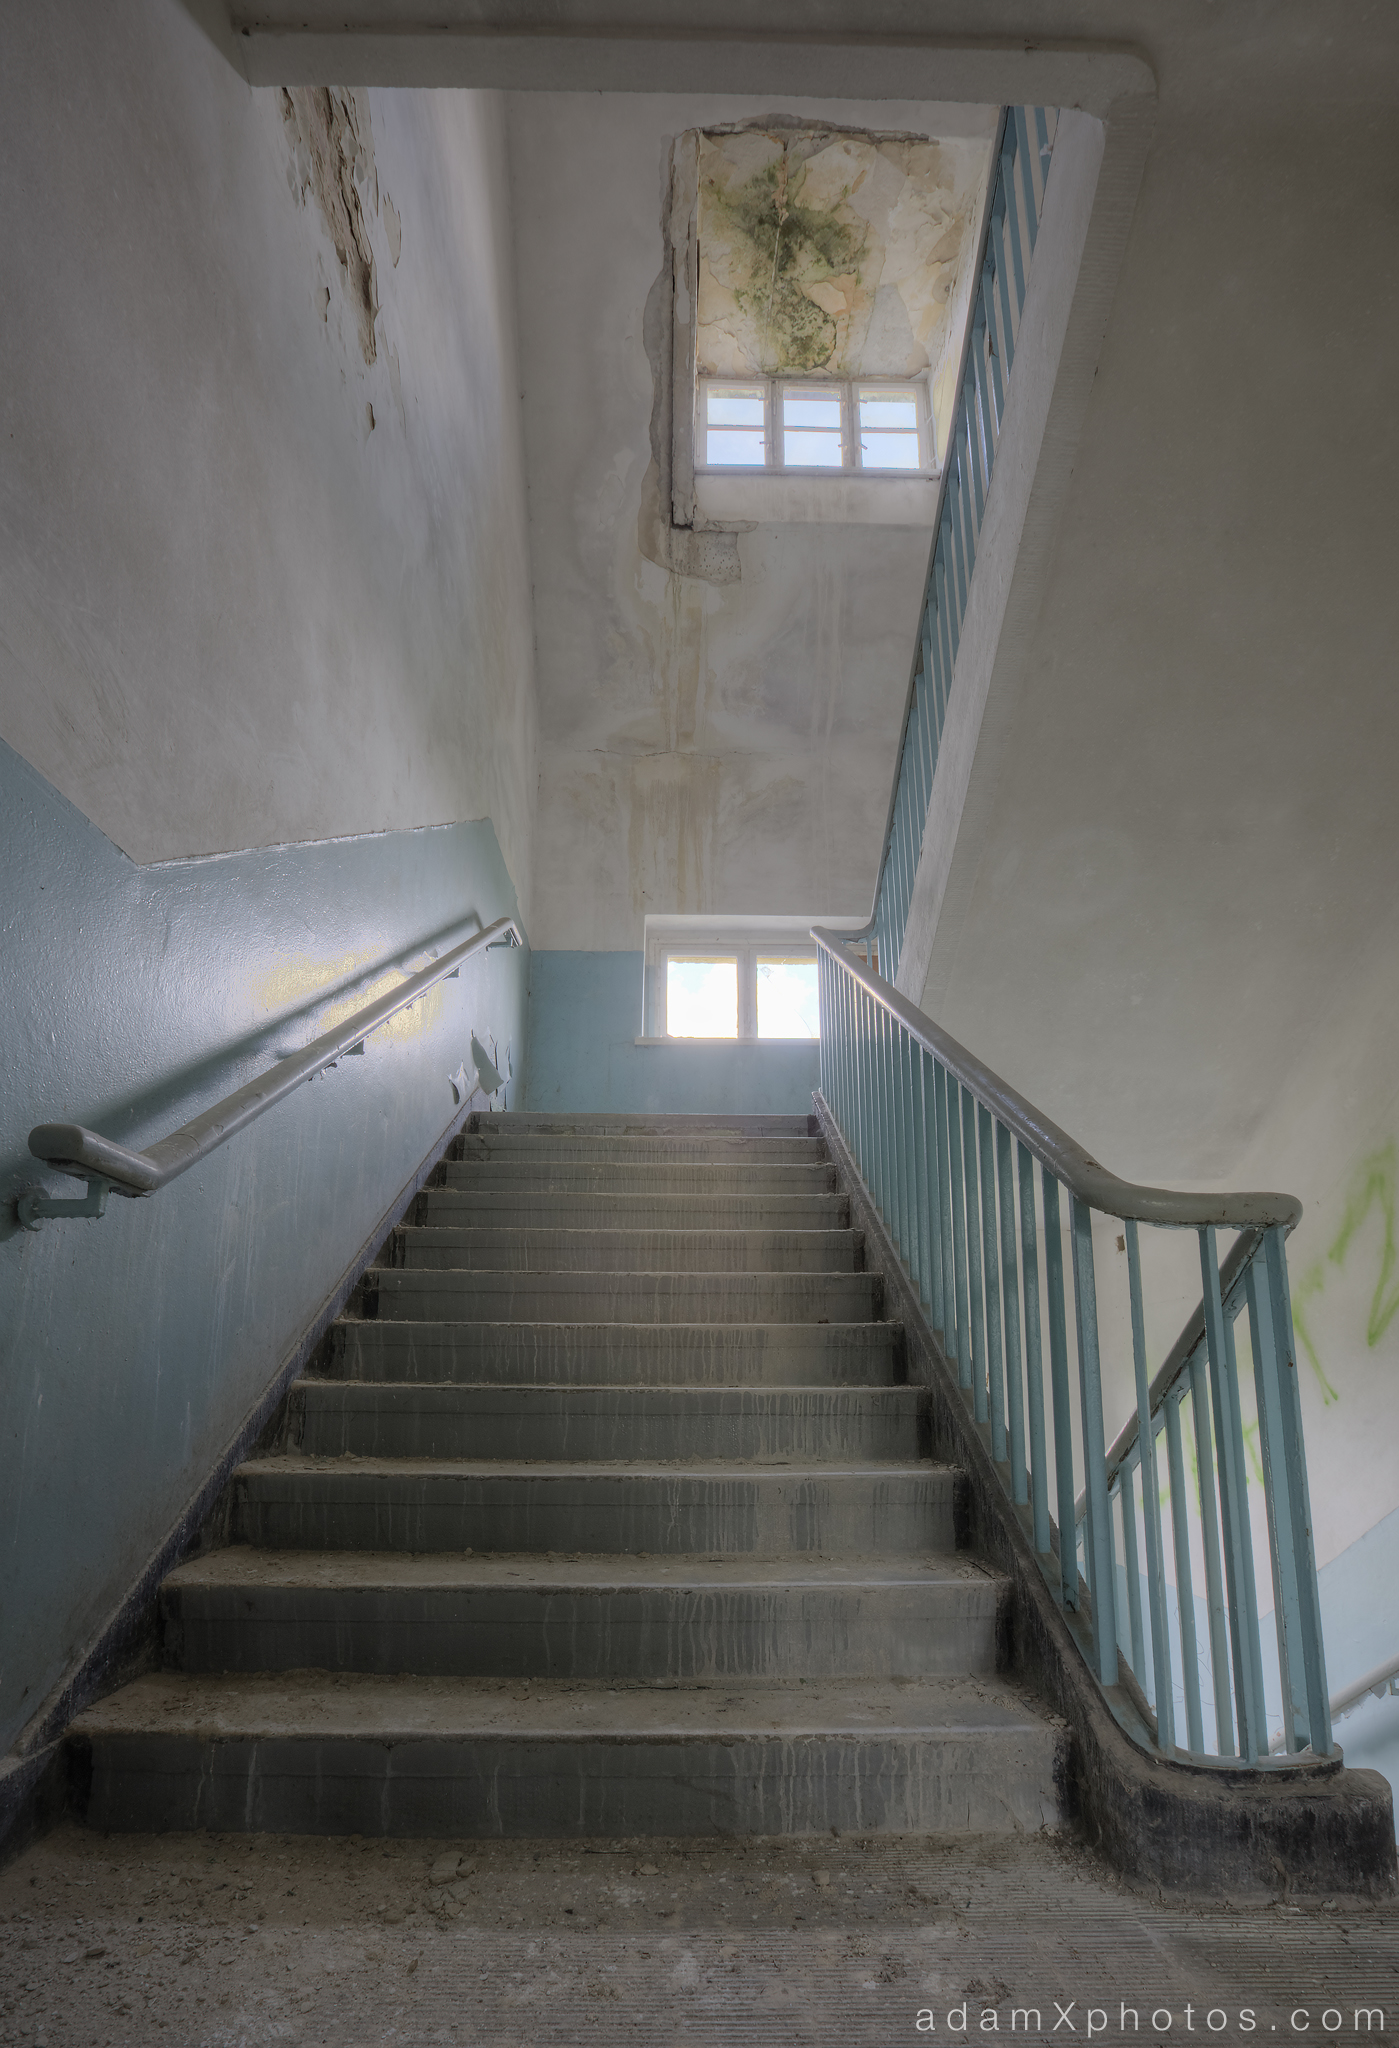 Adam X Urbex Urban Exploration Abandoned Germany Wunsdorf barracks soviet stairs stairwell decay colour textures blue